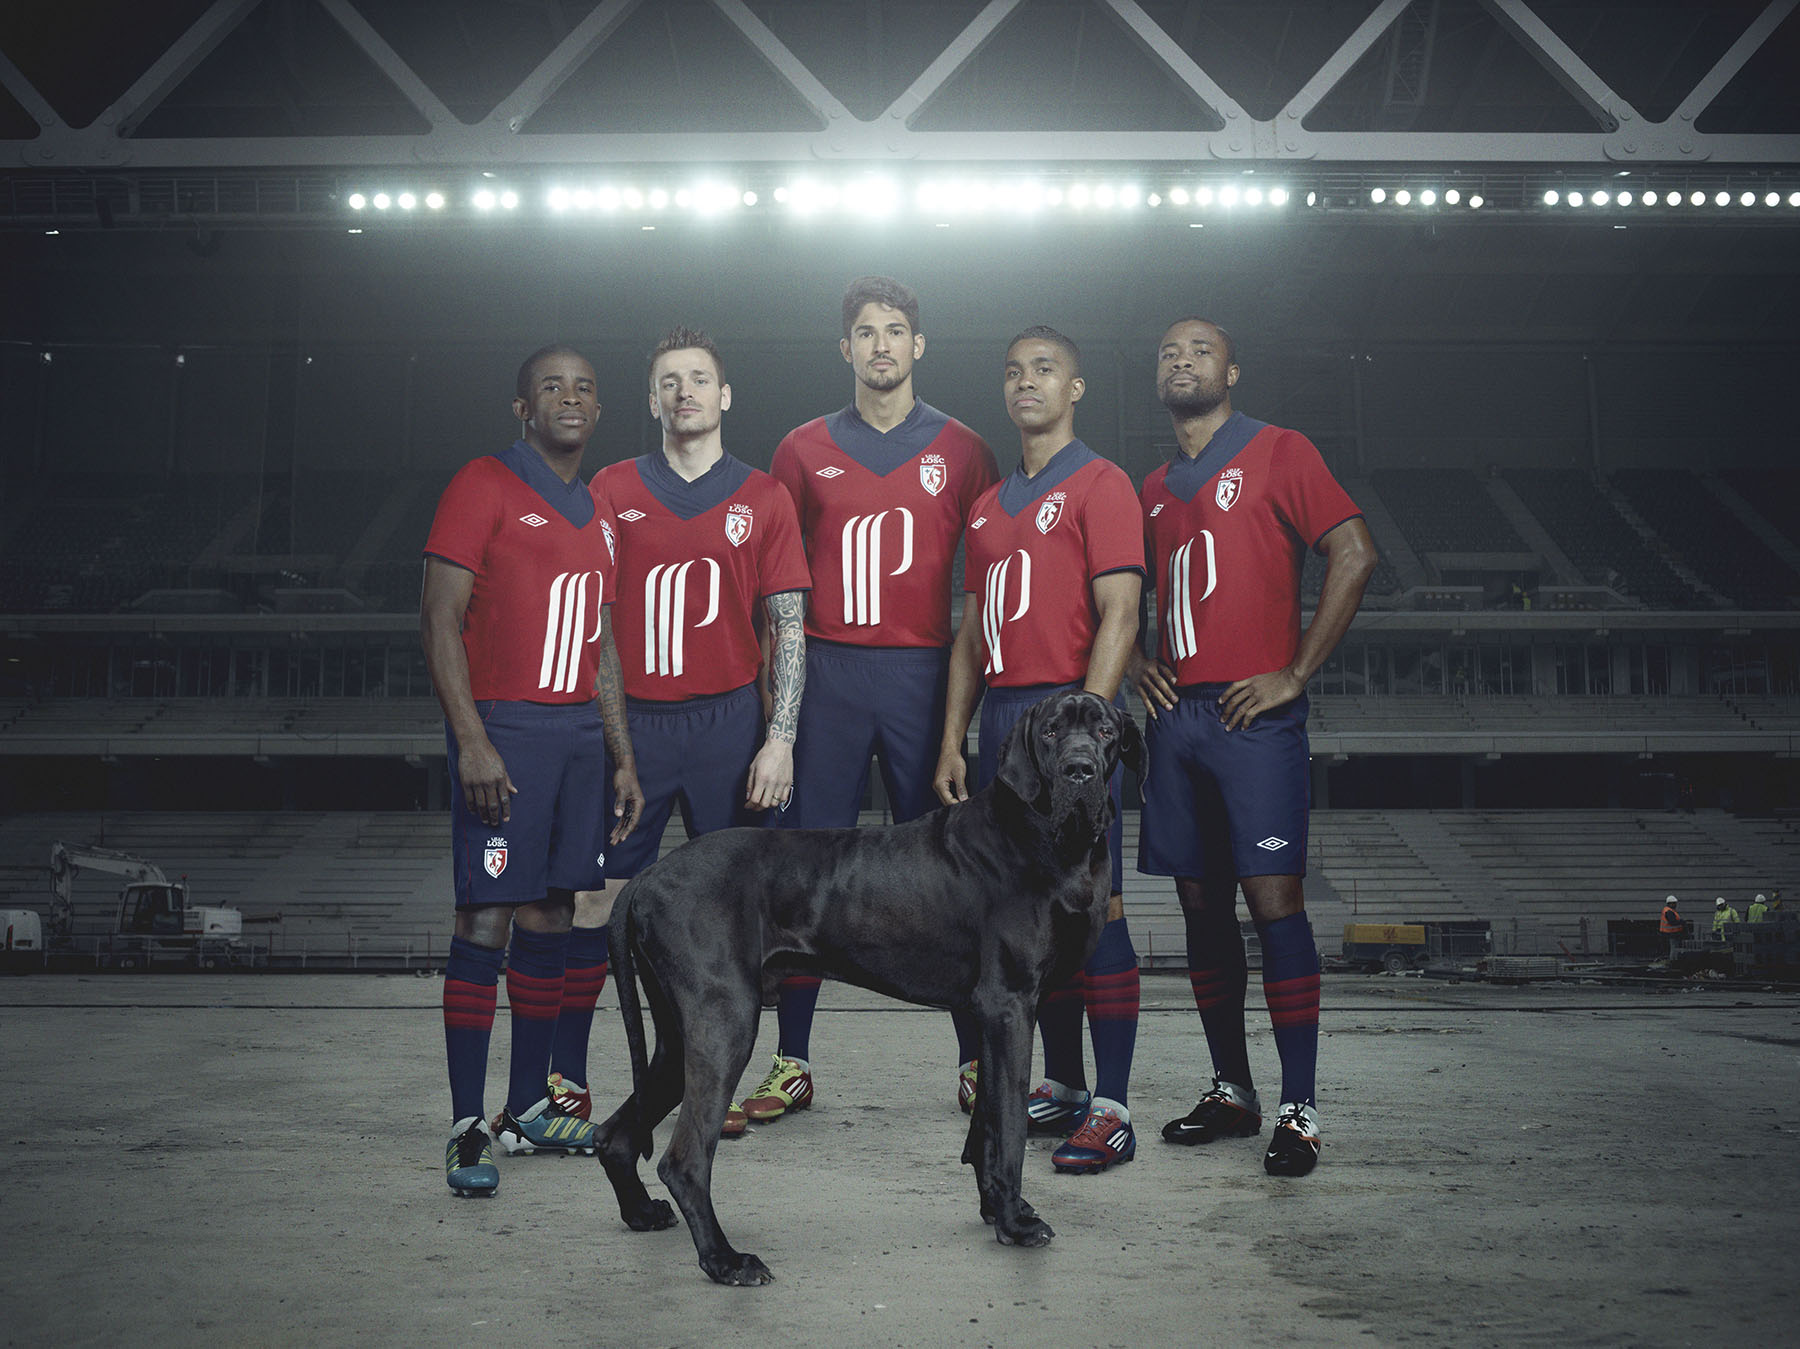 0817_UMBRO_LILLE_PLAYERS_Home_R7 copy